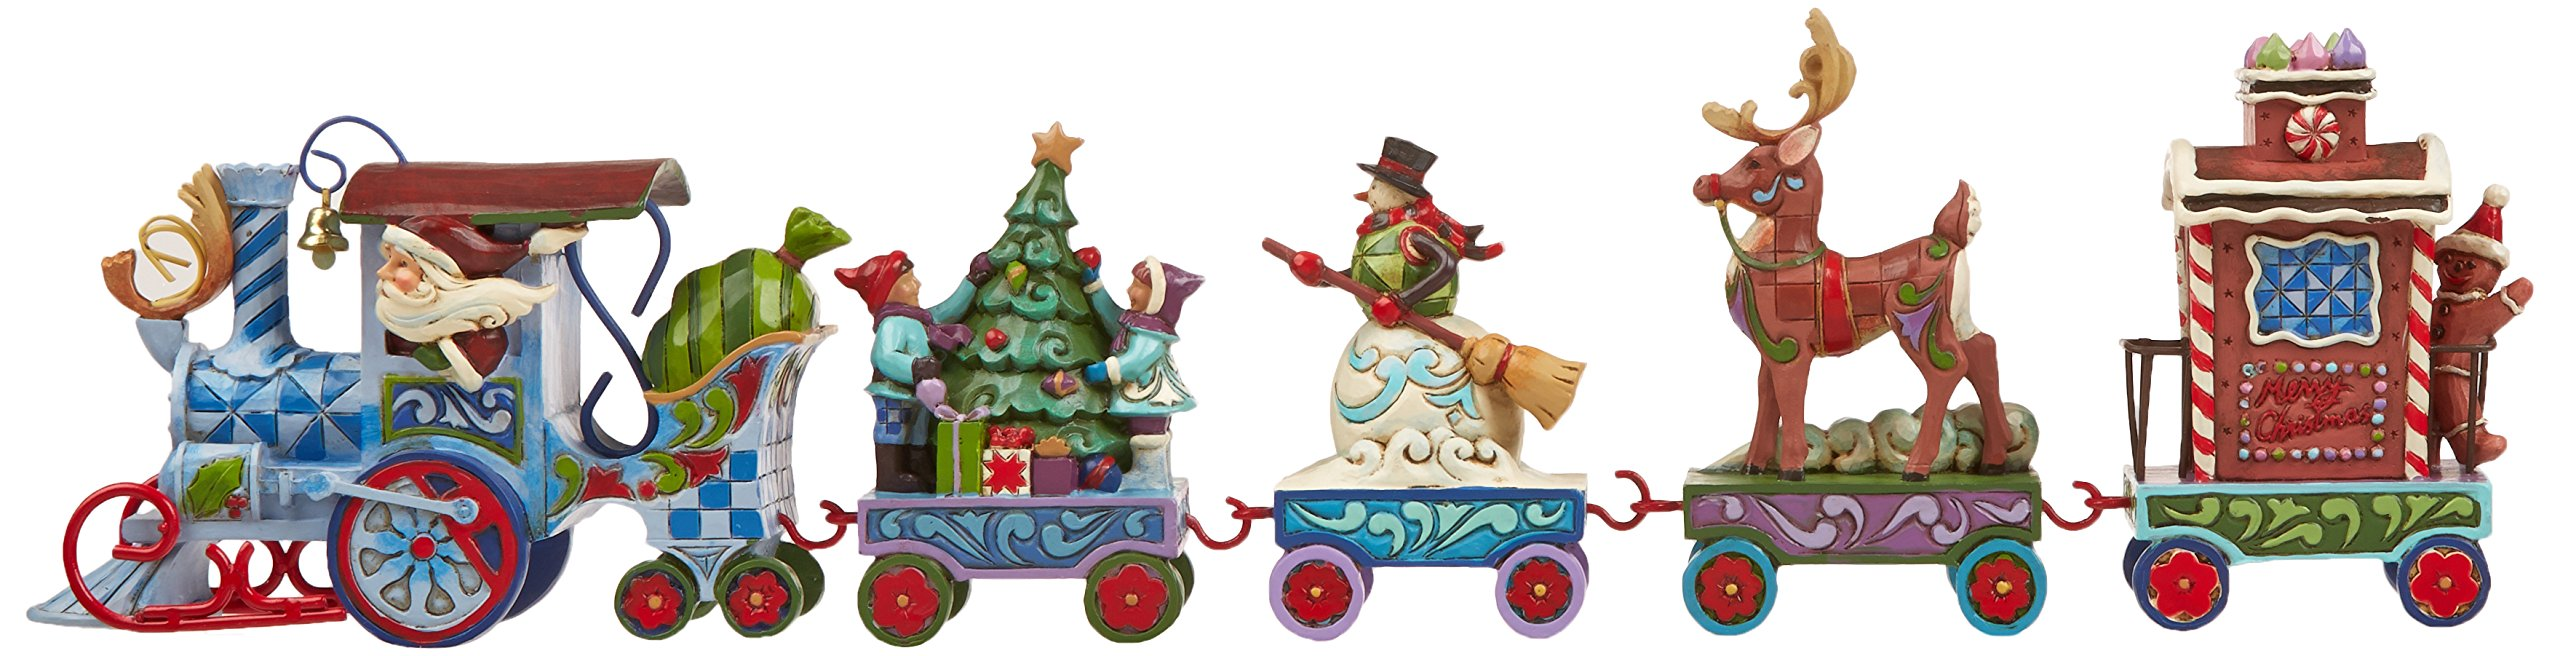 Jim Shore Heartwood Creek Holiday Express Train 5-Piece Mini Set Stone Resin Figurine, 3.5""